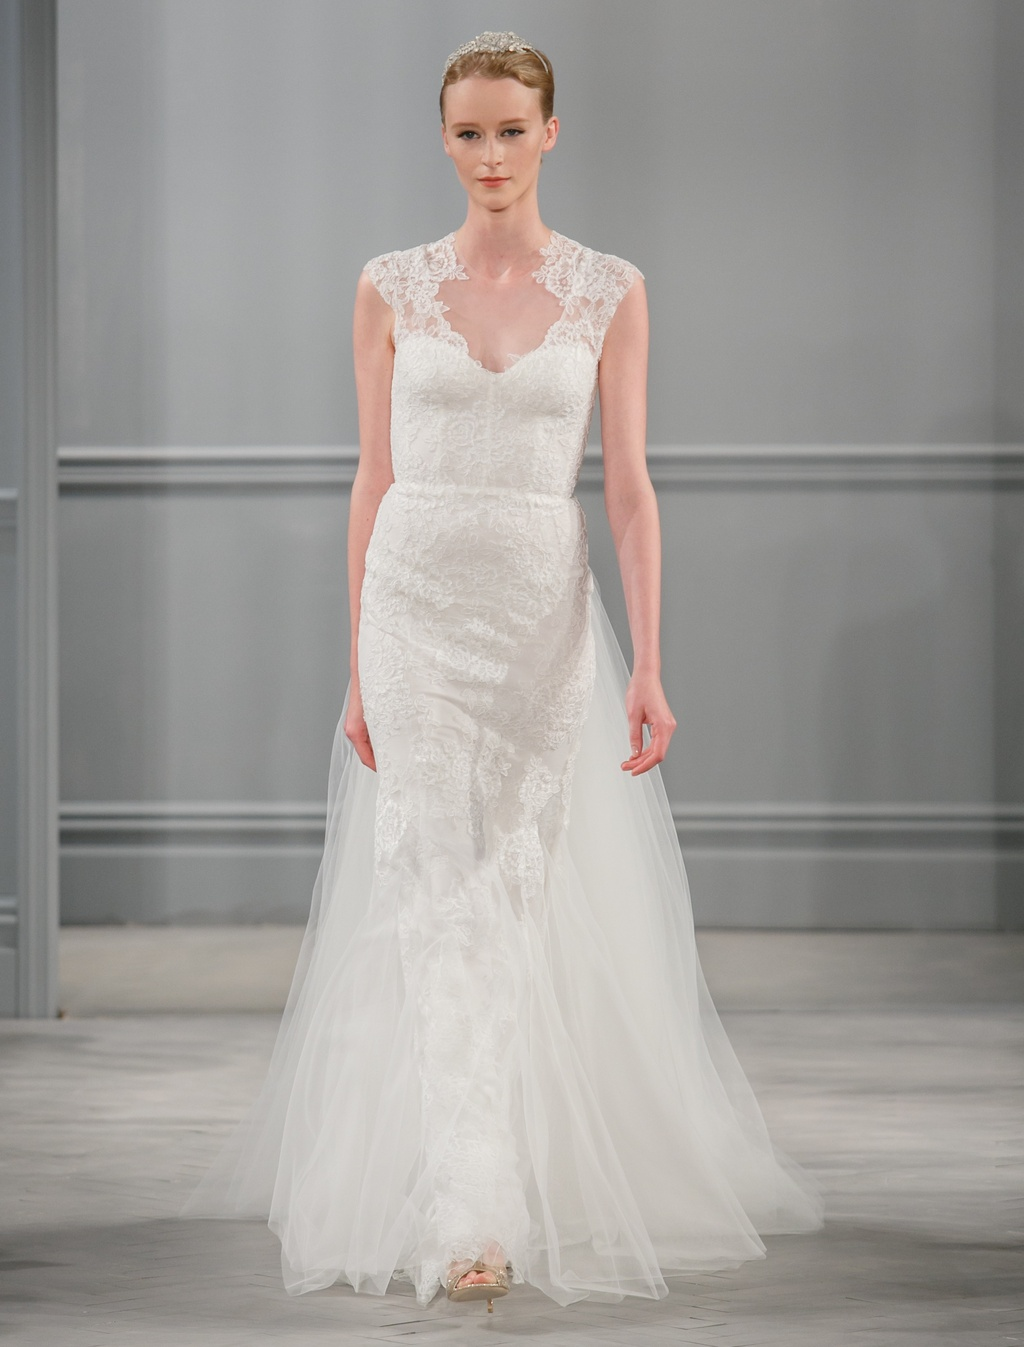 Spring-2014-wedding-dress-monique-lhuillier-bridal-harper.full